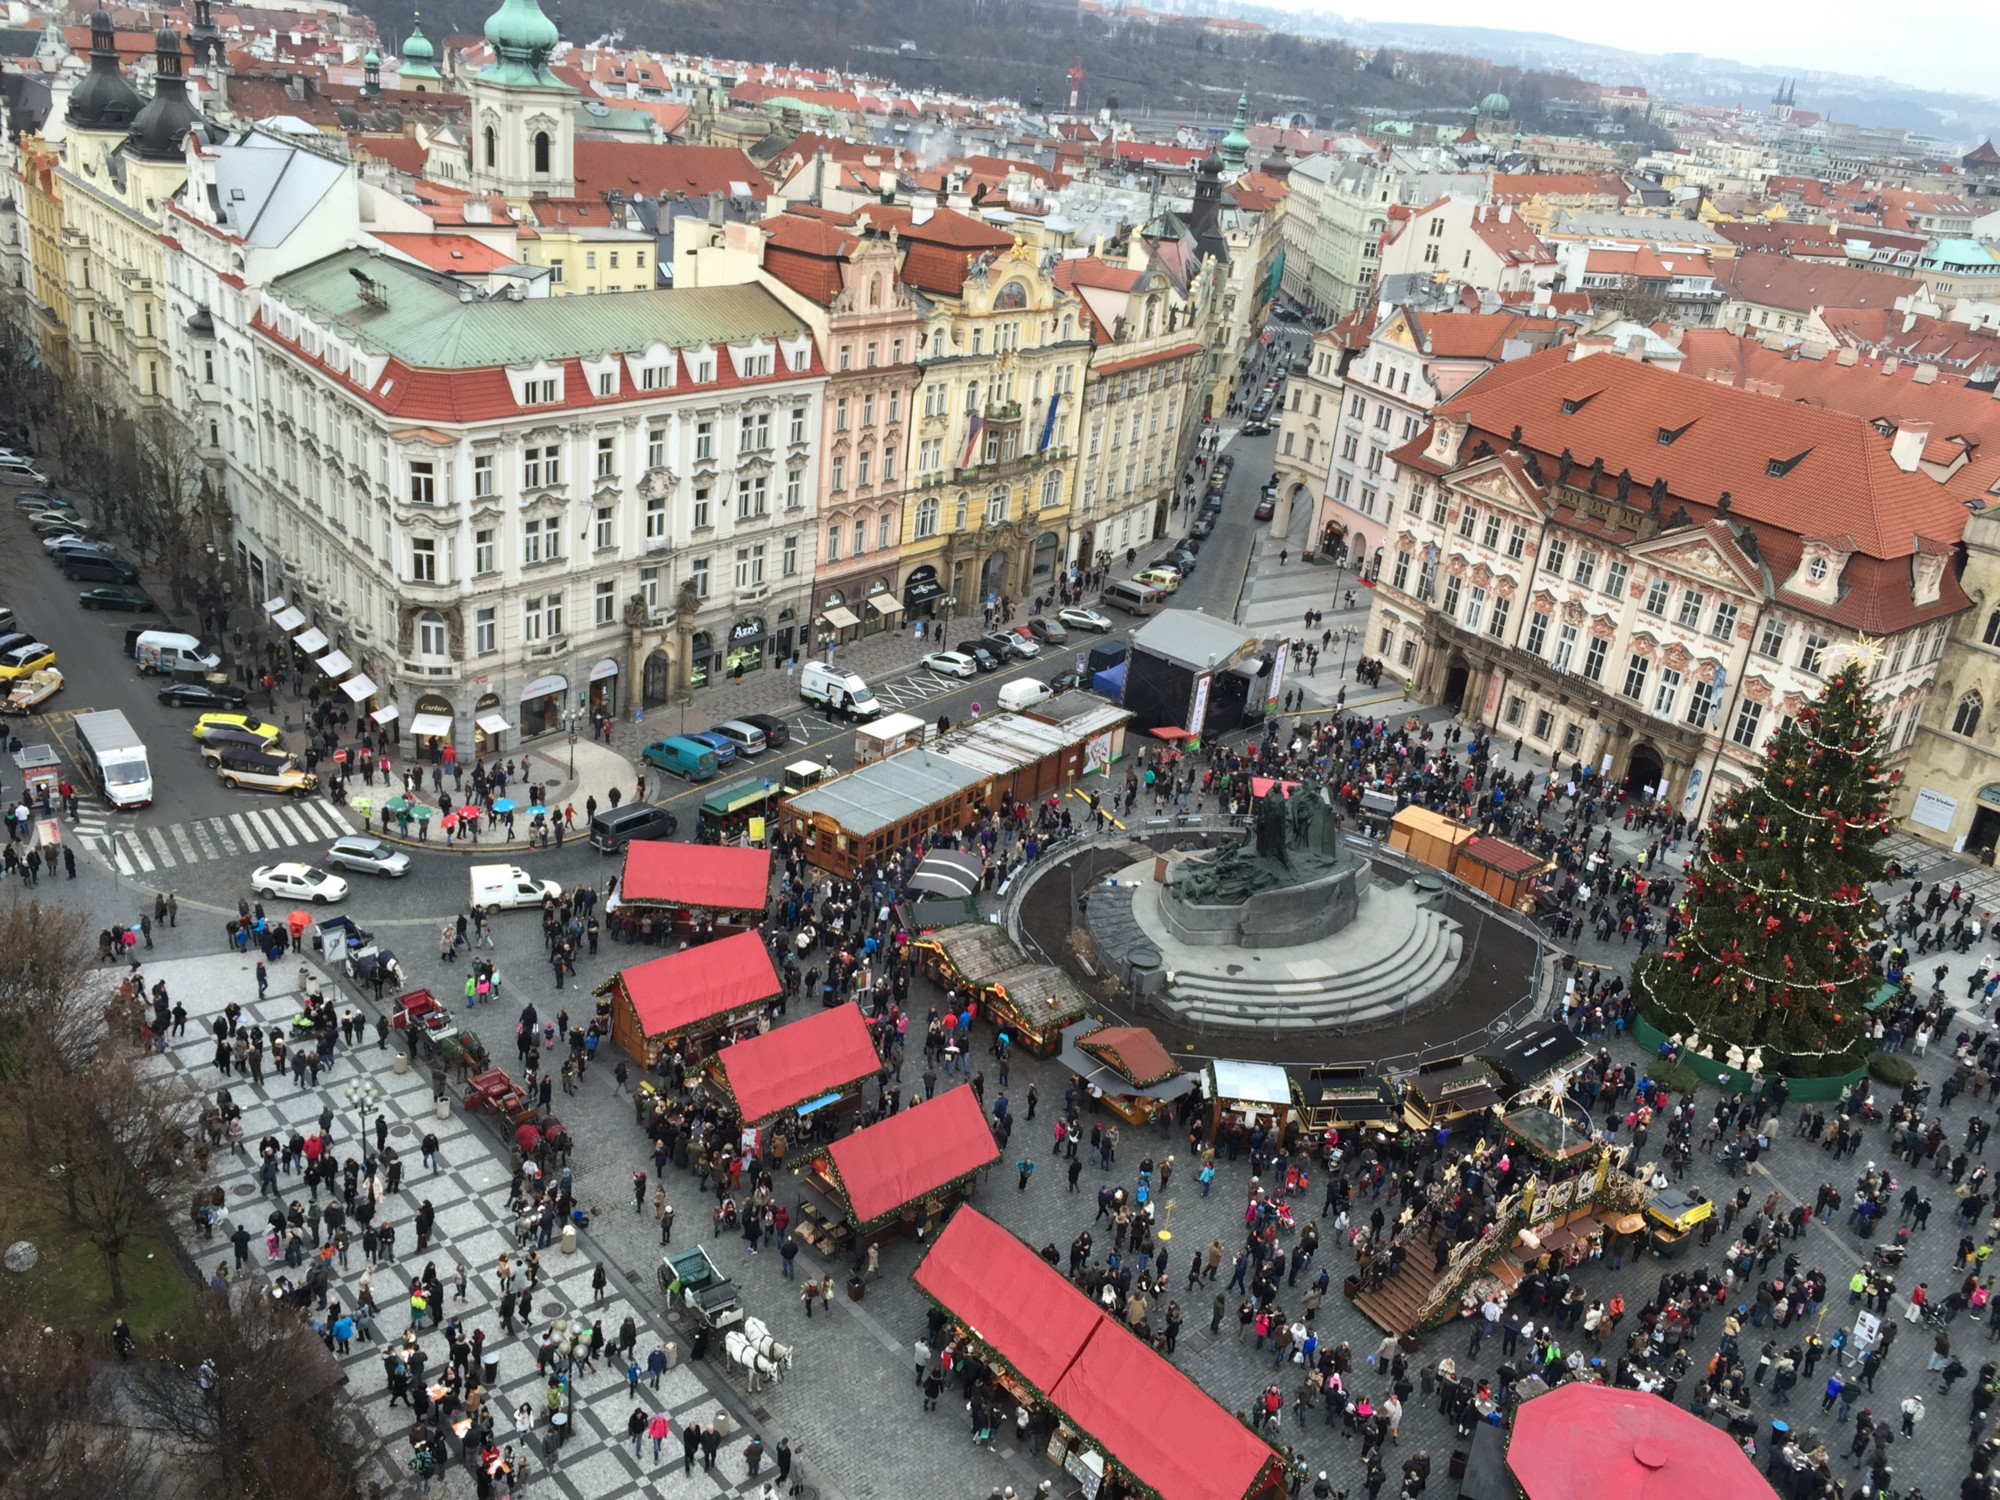 Christmas markets in the Old Town Square